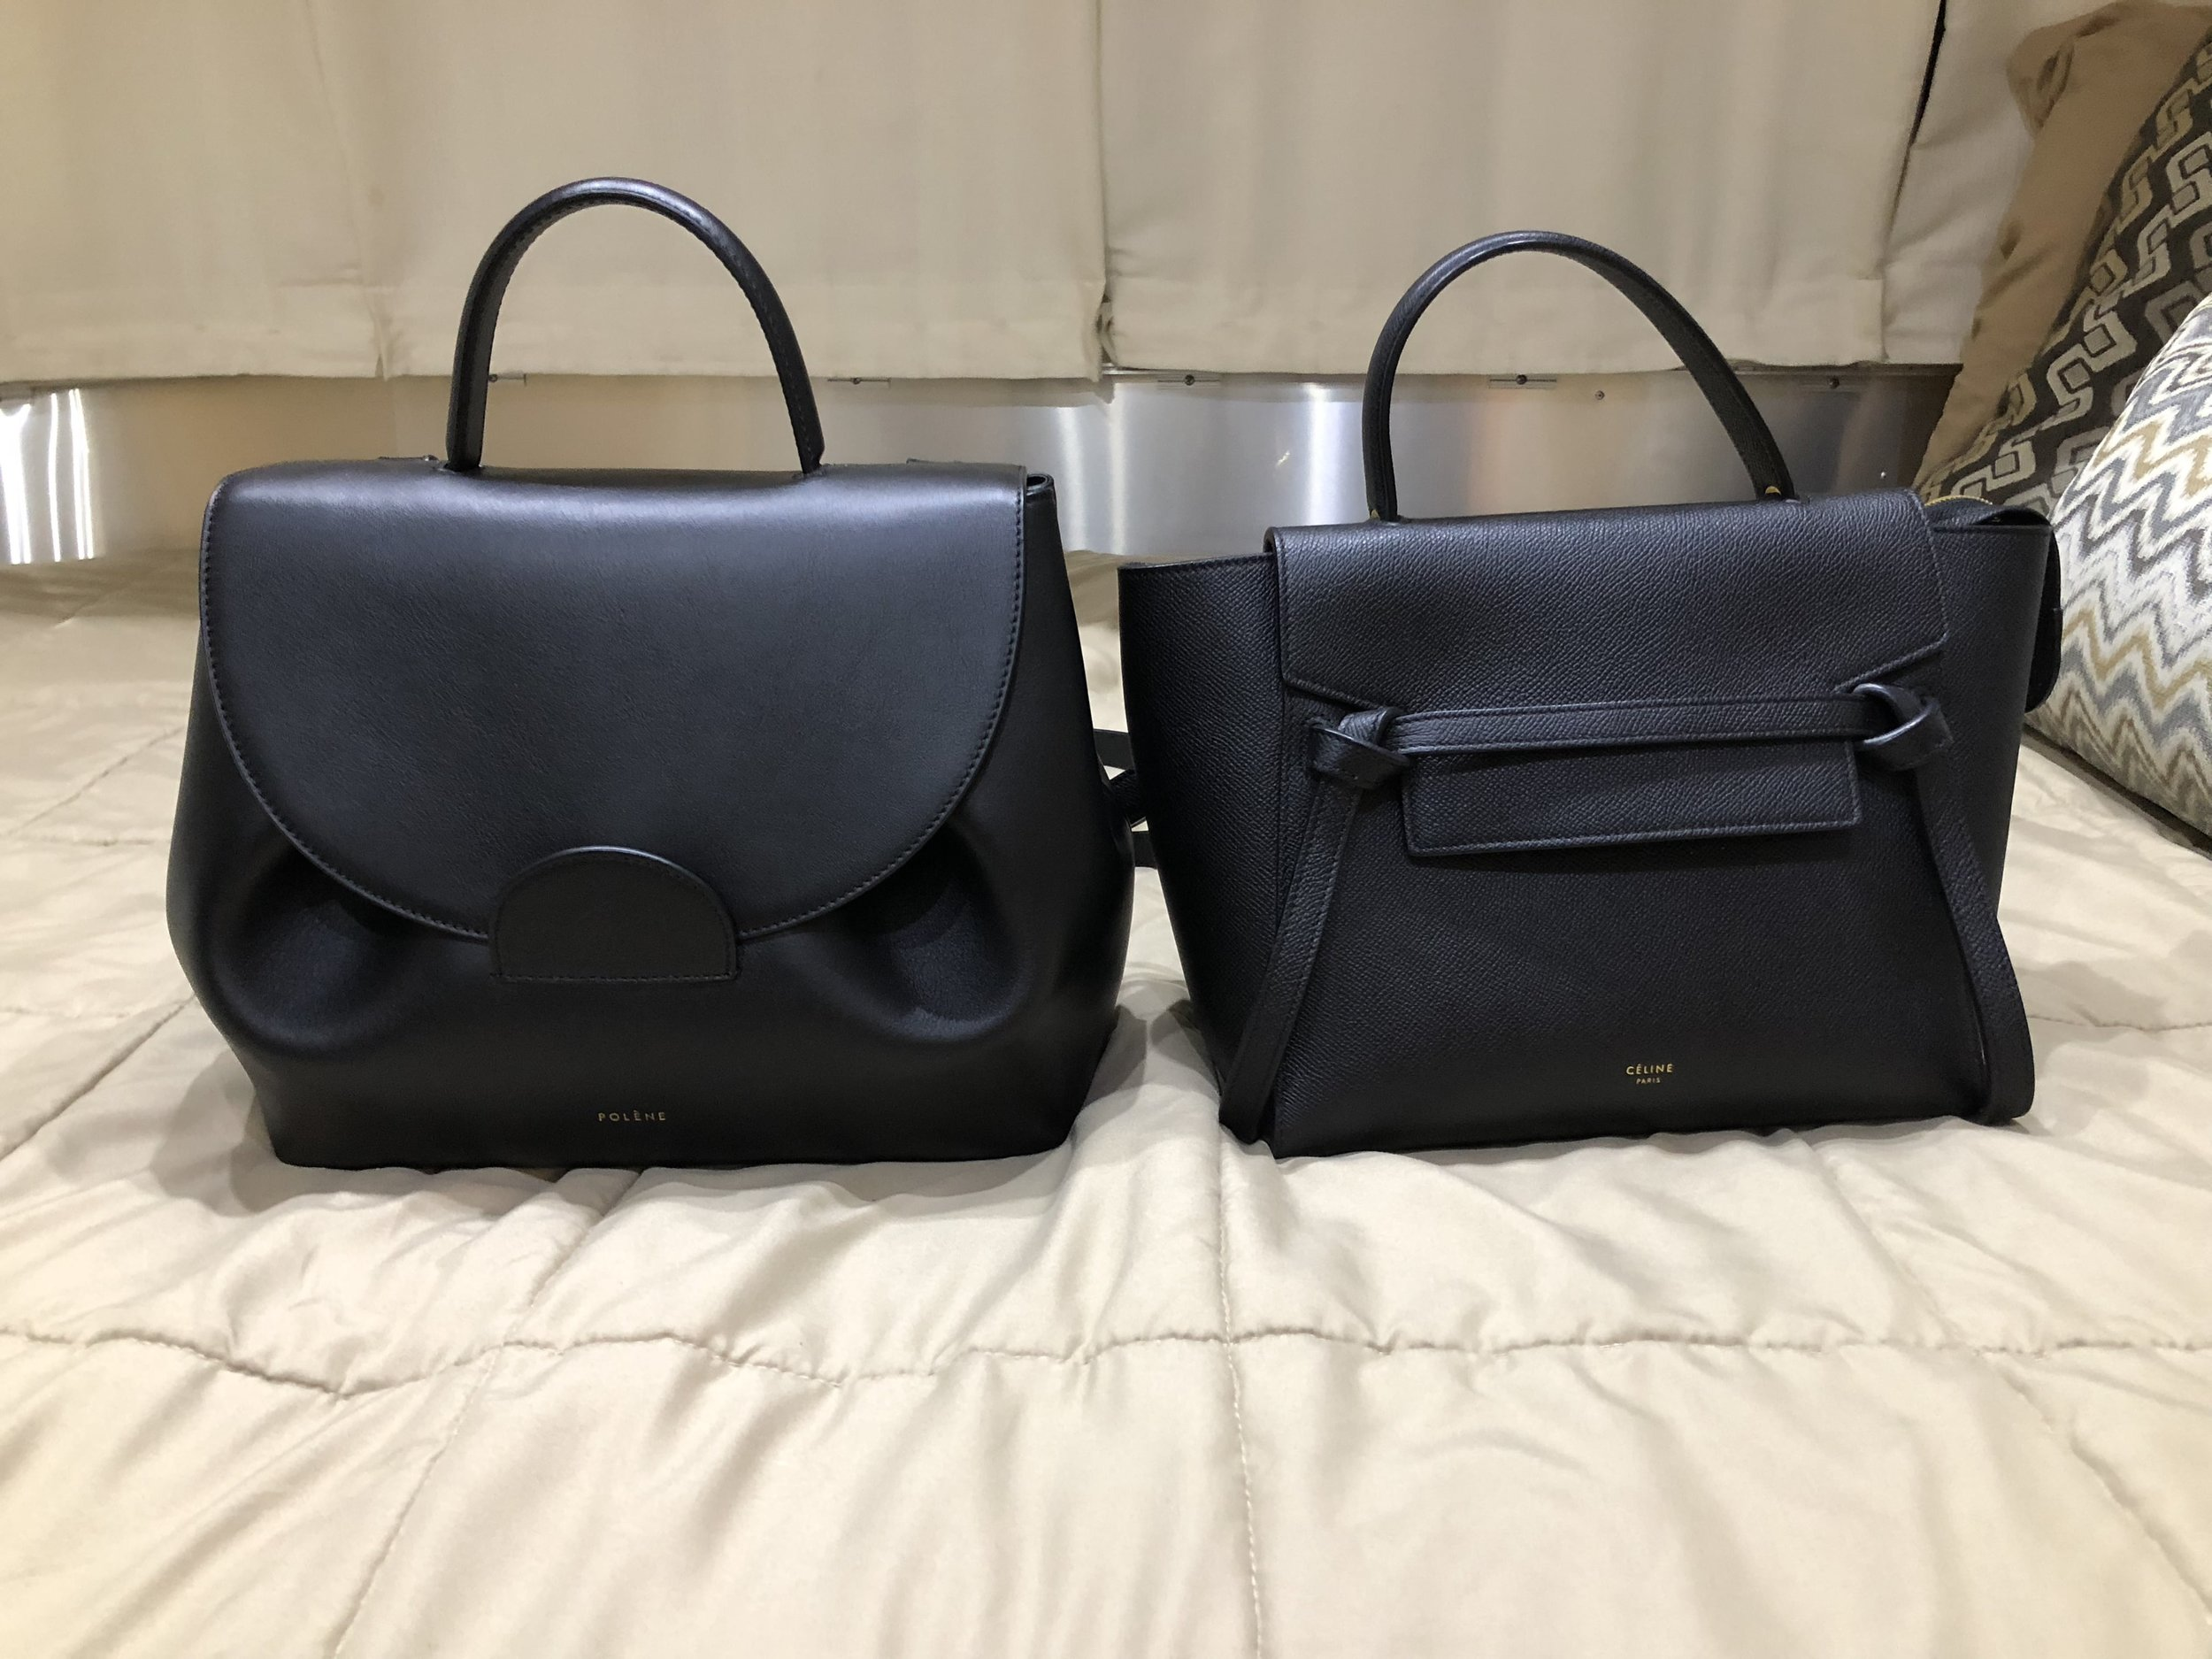 Celine Micro Belt Bag compare